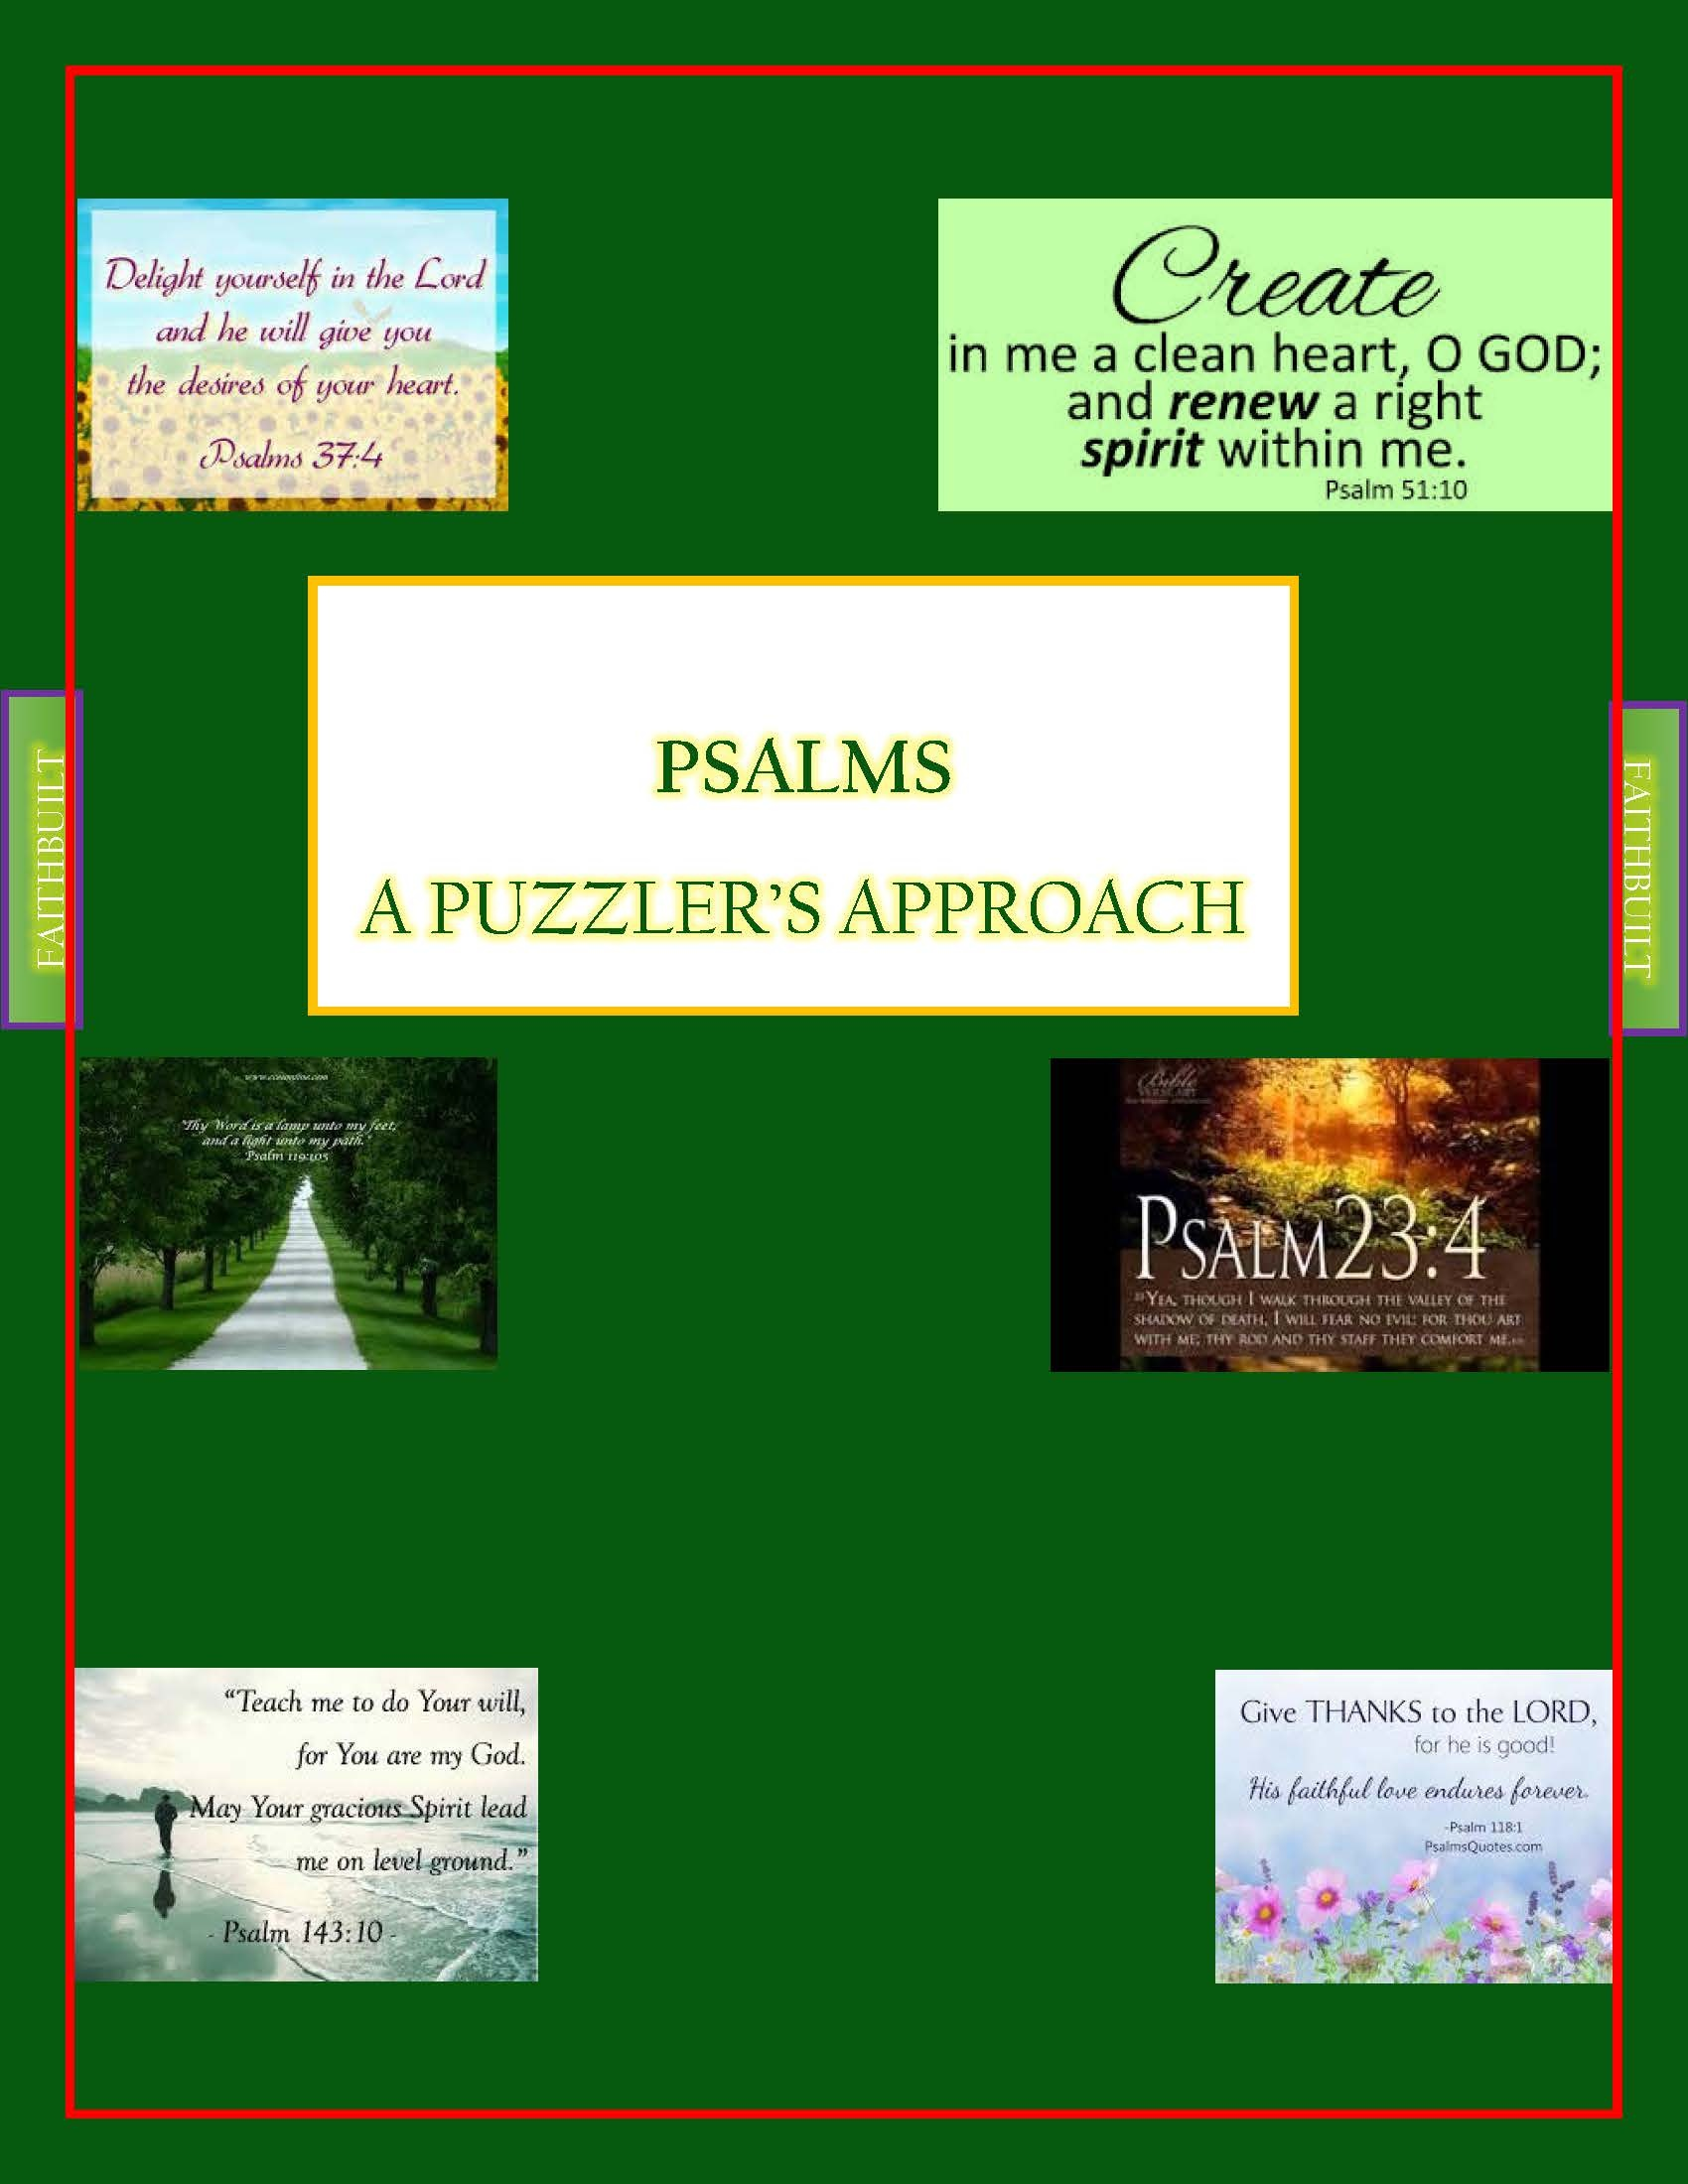 PSALMS: A PUZZLER'S APPROACH